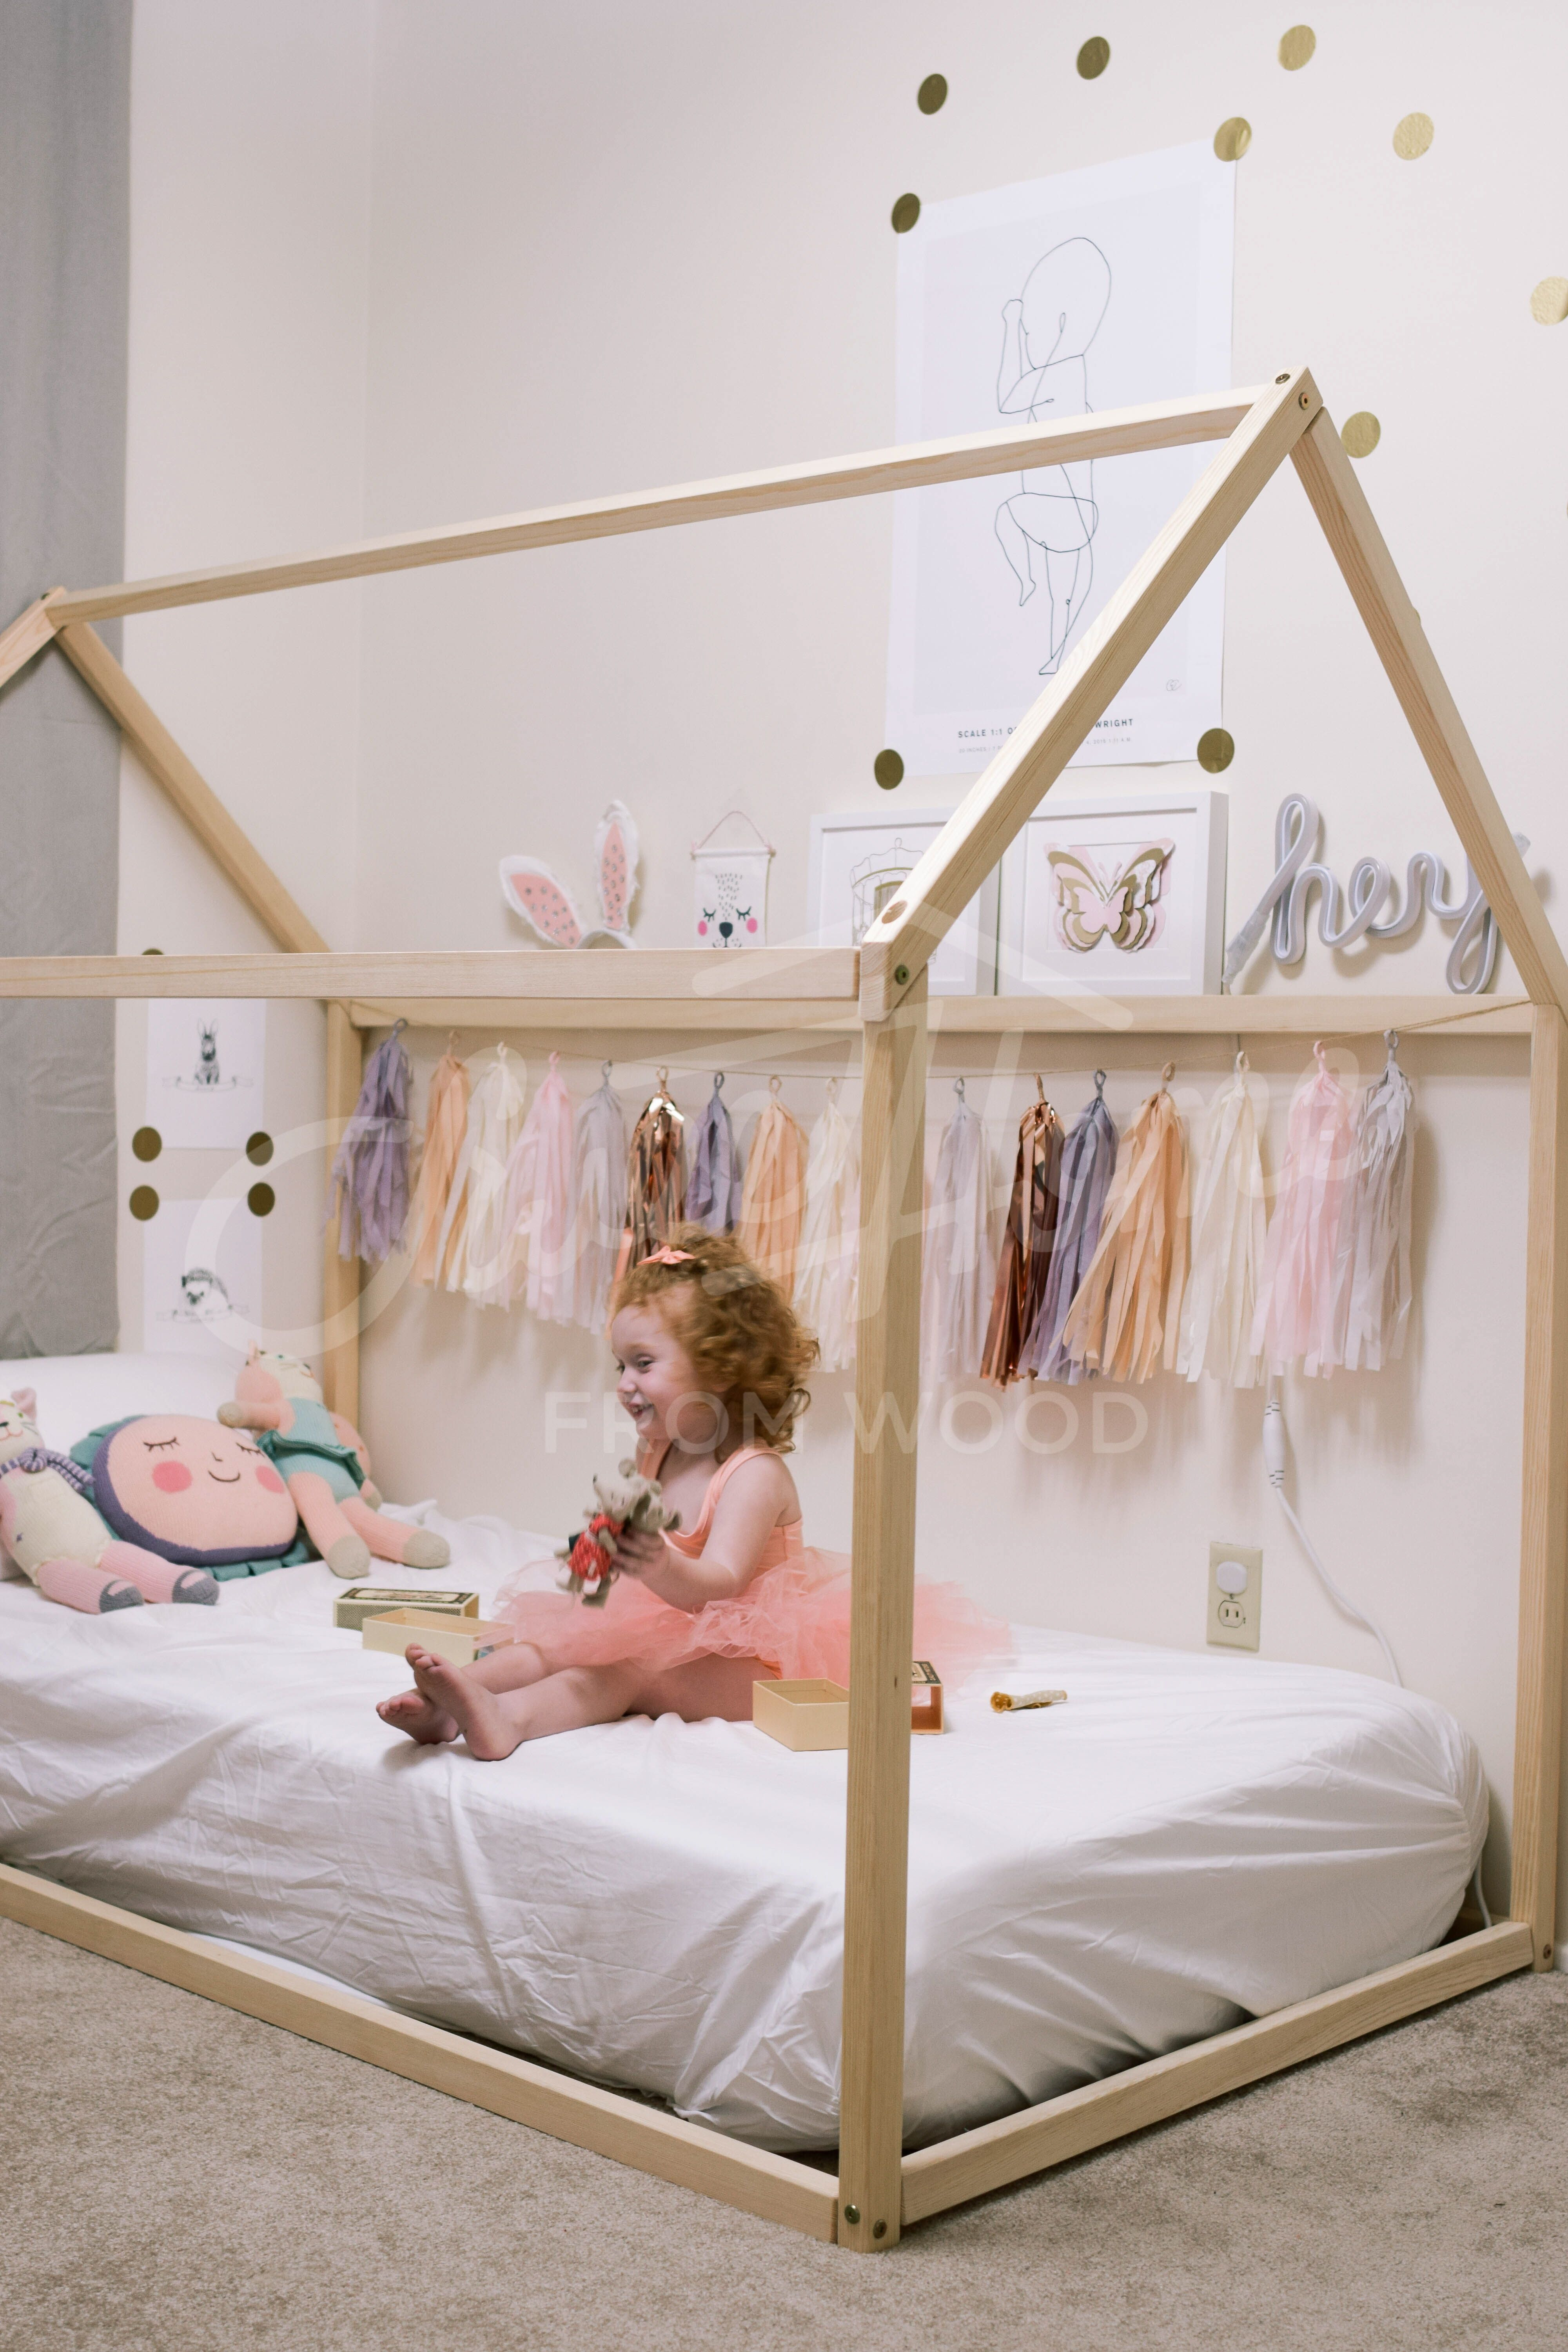 Toddler Bed House Shaped Bed Loft Bed Nursery Wood House Bed